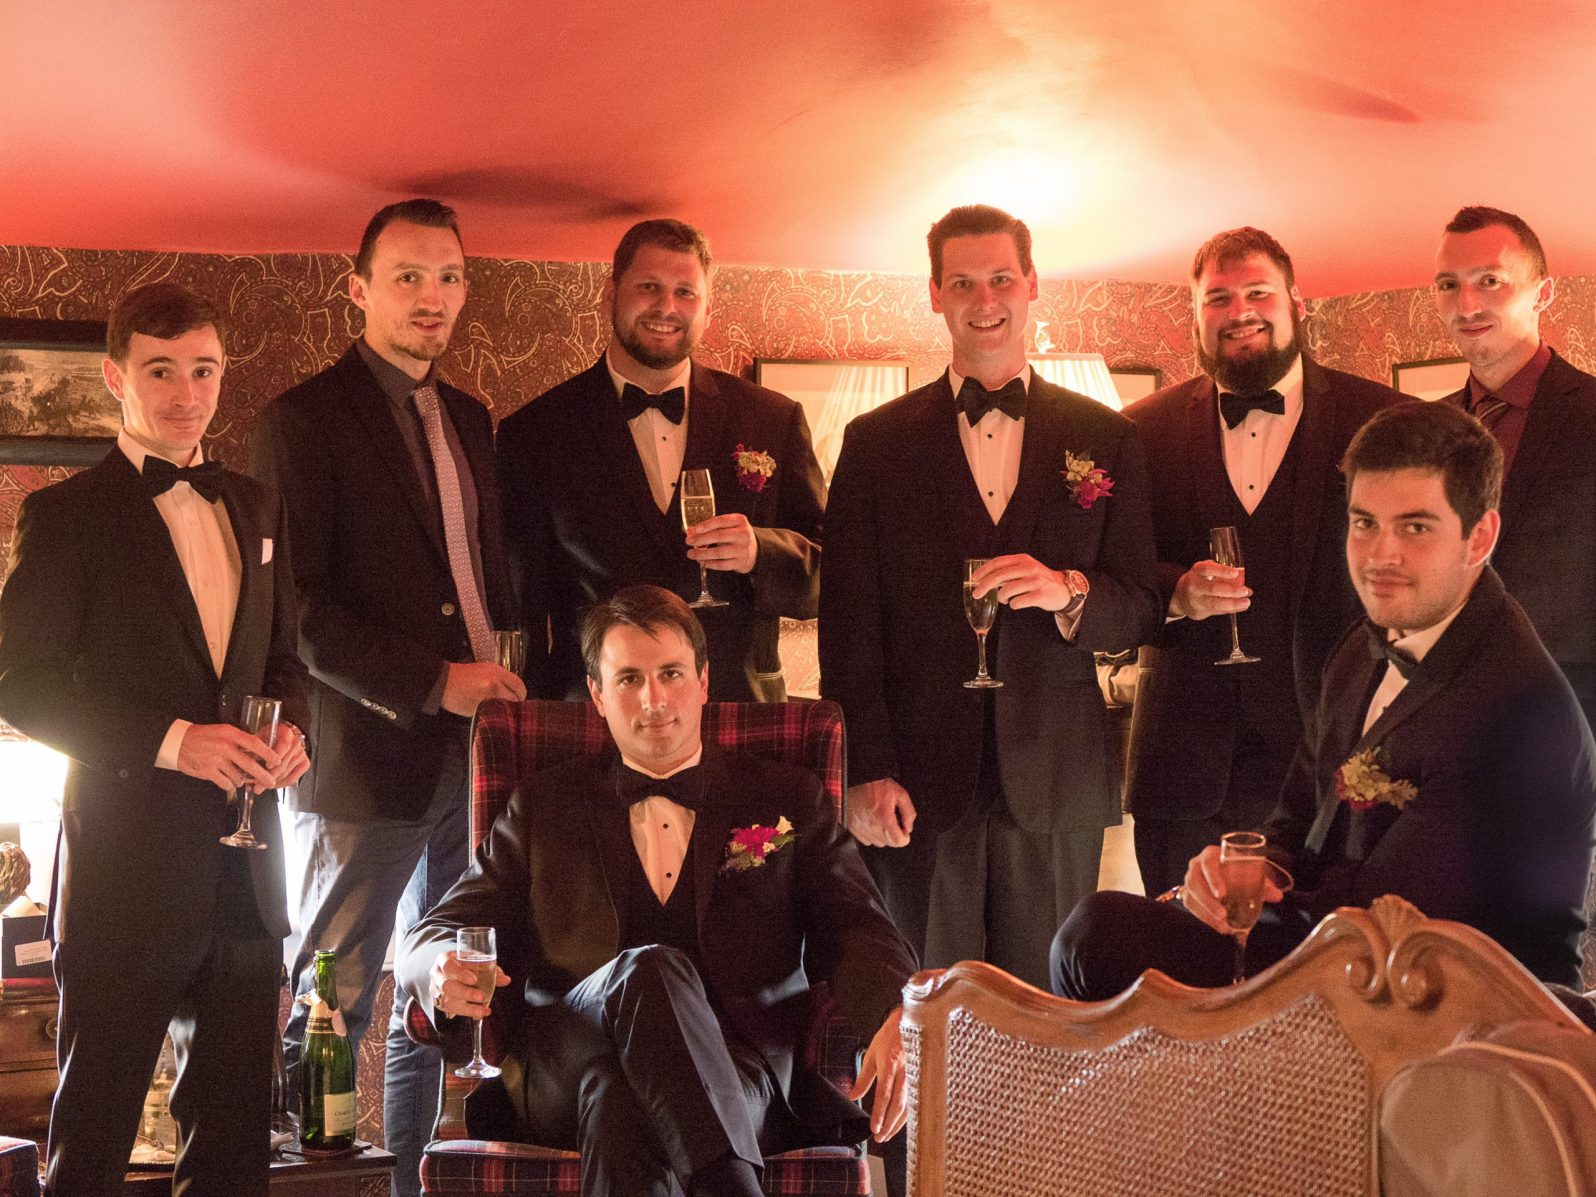 Lumix GH4, Leica 42.5mm f/1.2 lens, f/2.8, 1/30s, ISO 3200. This picture is really noisy, but it was really dark in the room, and I didn't have a lot of options for making a group portrait of the groom and his best friends. A sharp picture with noise is always better than a blurry picture without noise.